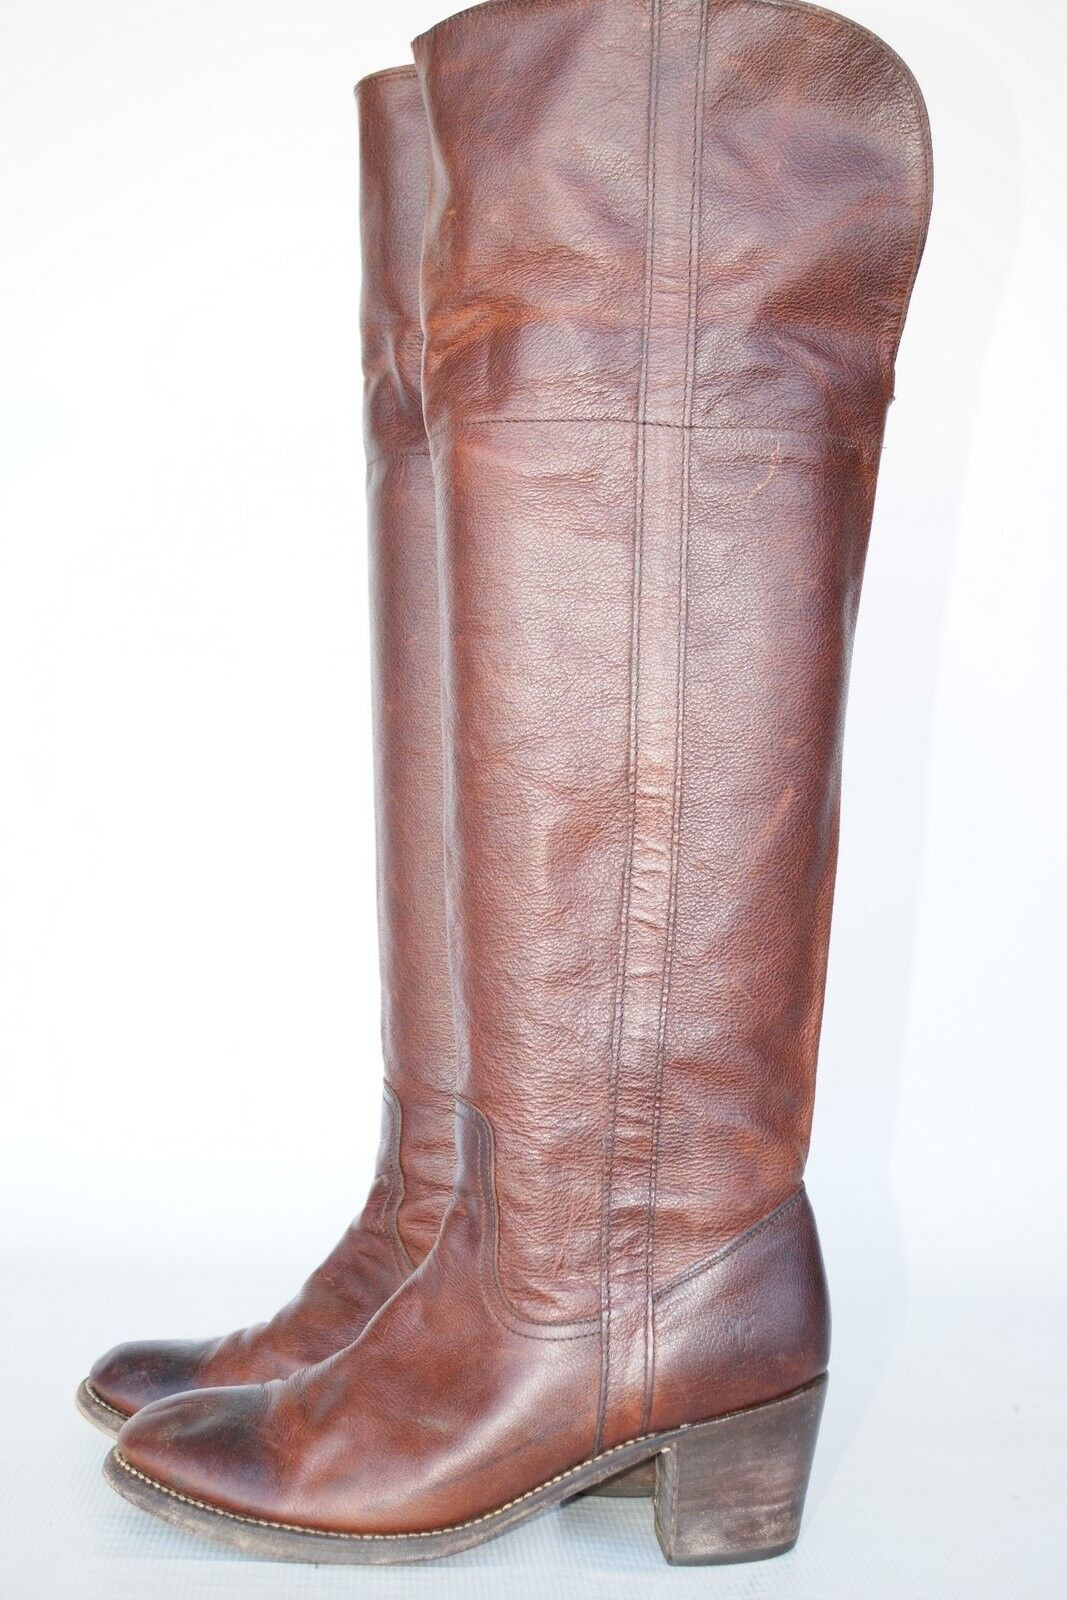 OTK Frye Tall Jane Cuff oiled leather riding boots 9.5 B Beautiful Patina!